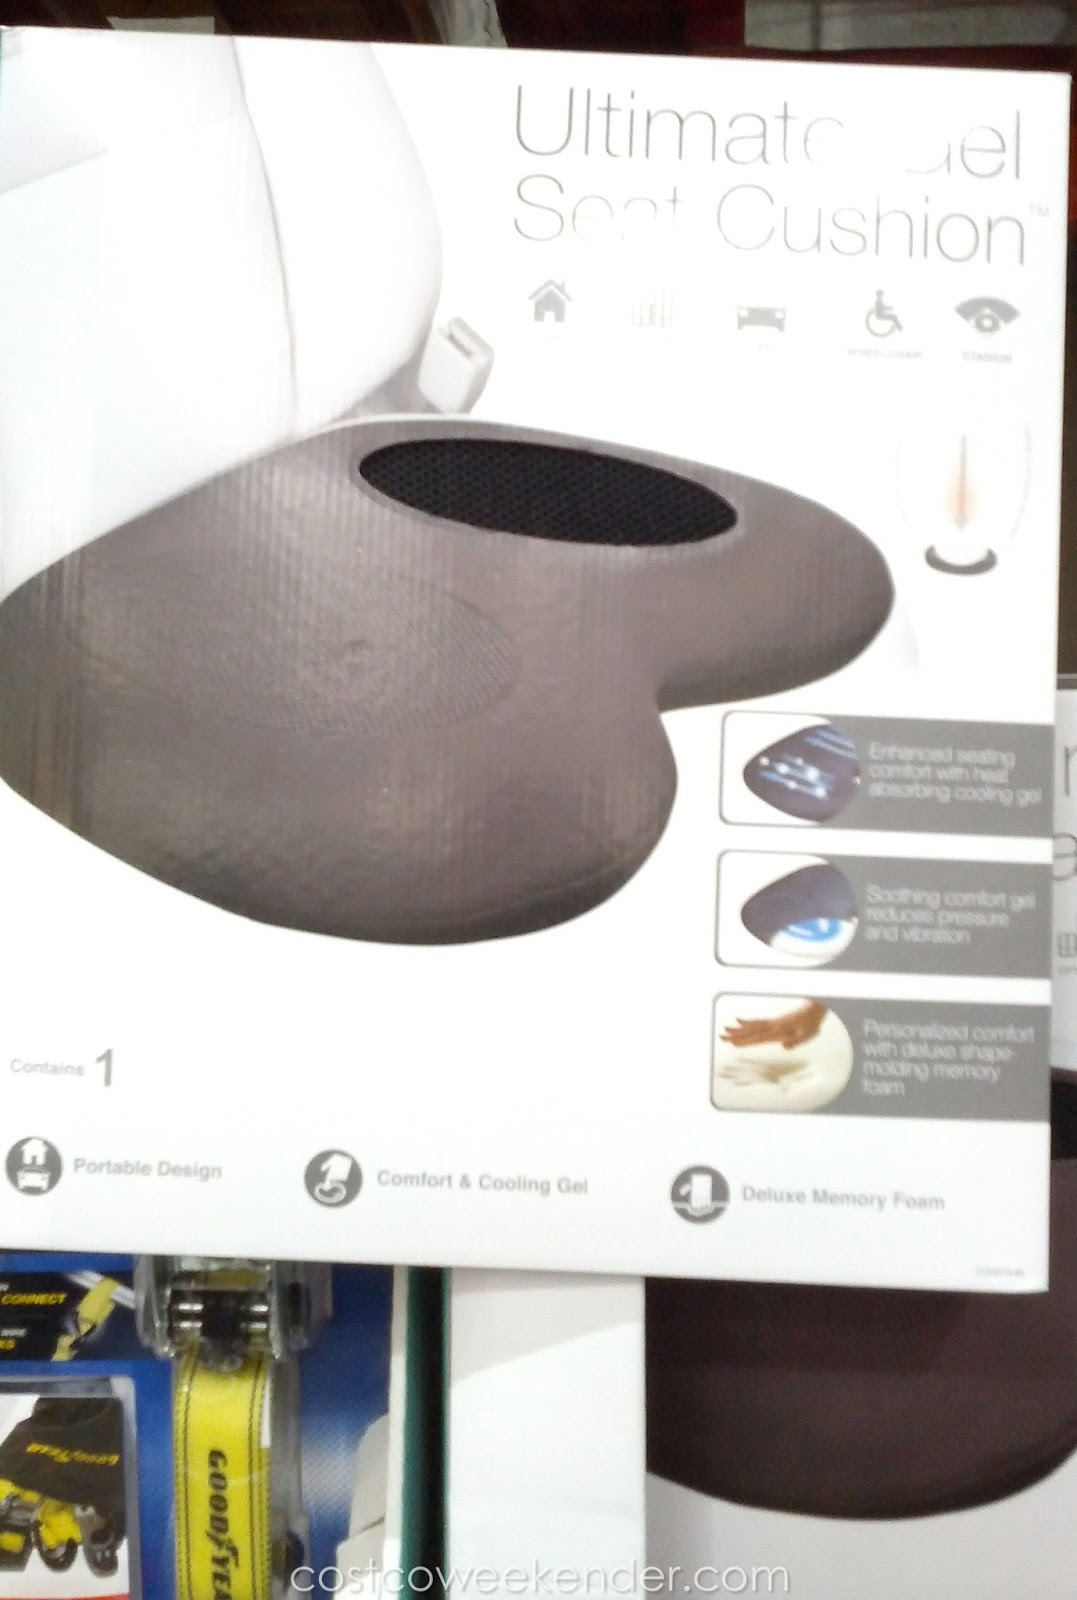 Costco 615905 - Drive for longer with the Winplus Ultimate Gel Seat Cushion